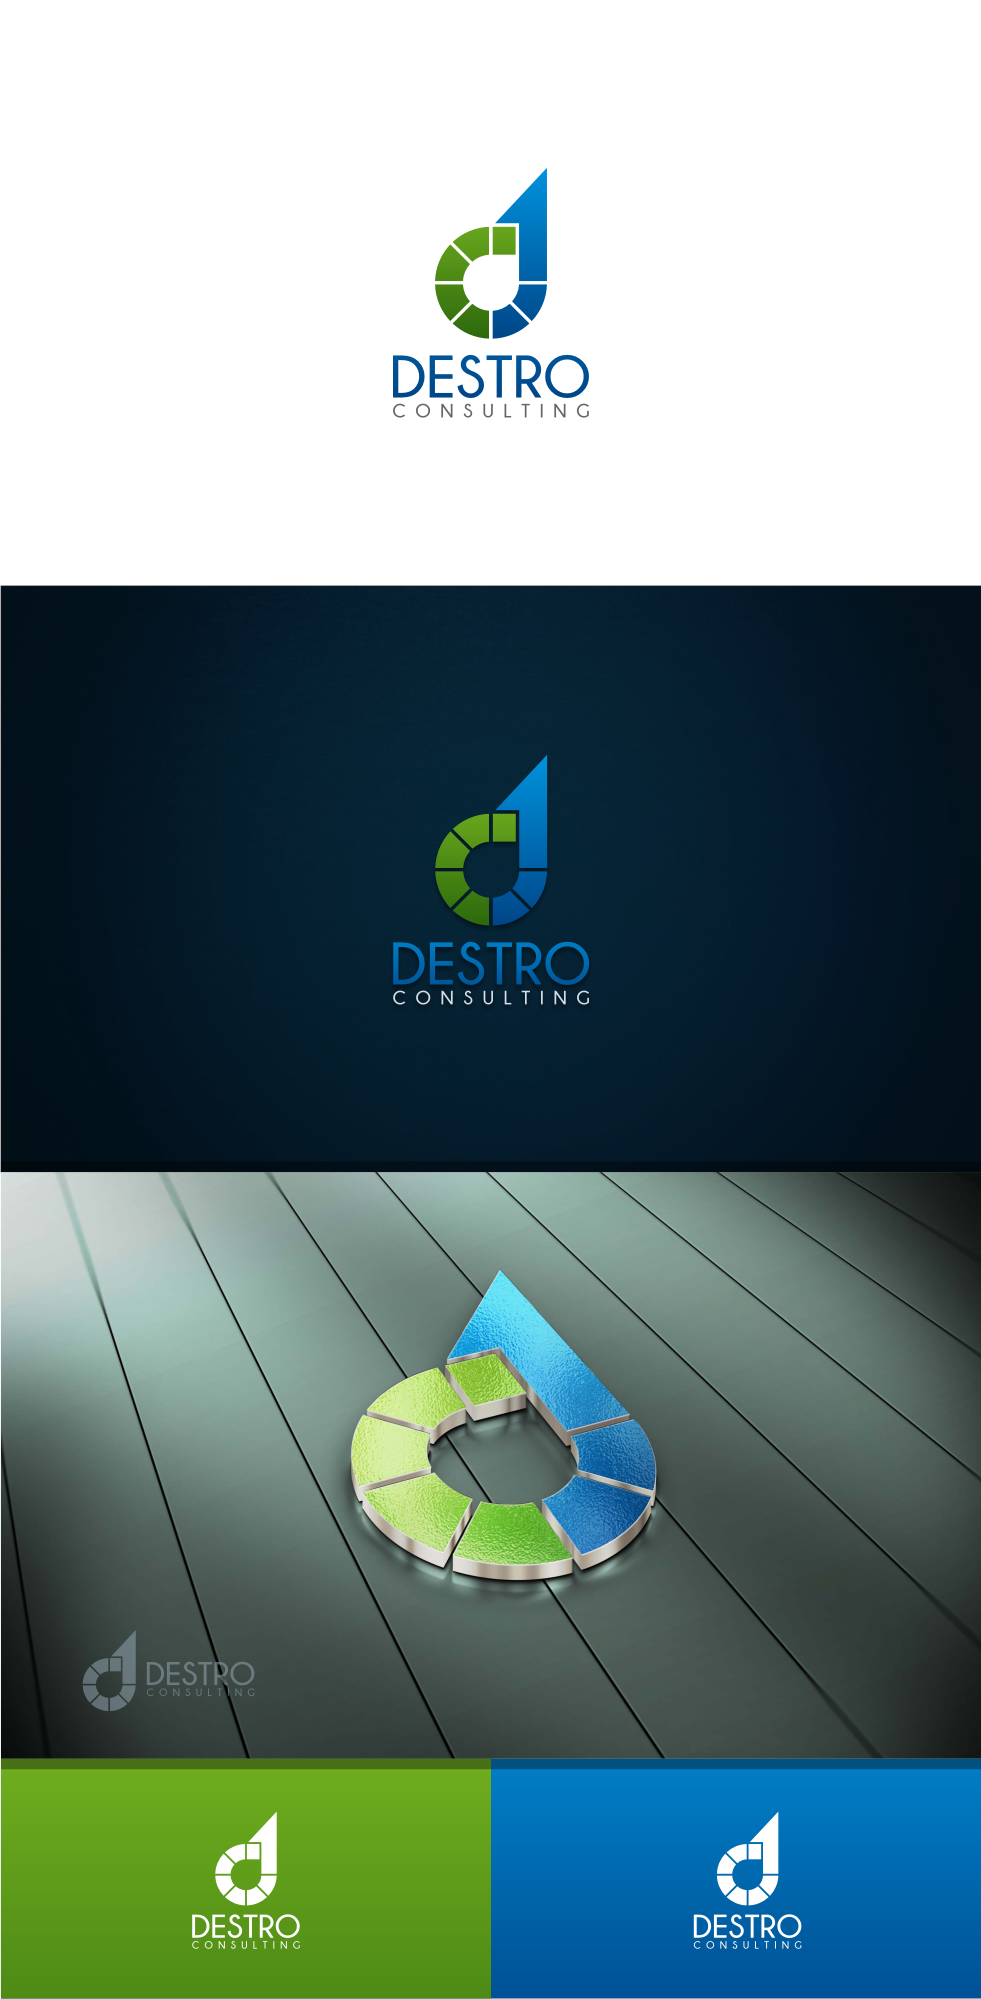 Create a Logo for a startup IT company and marketing material in the near future